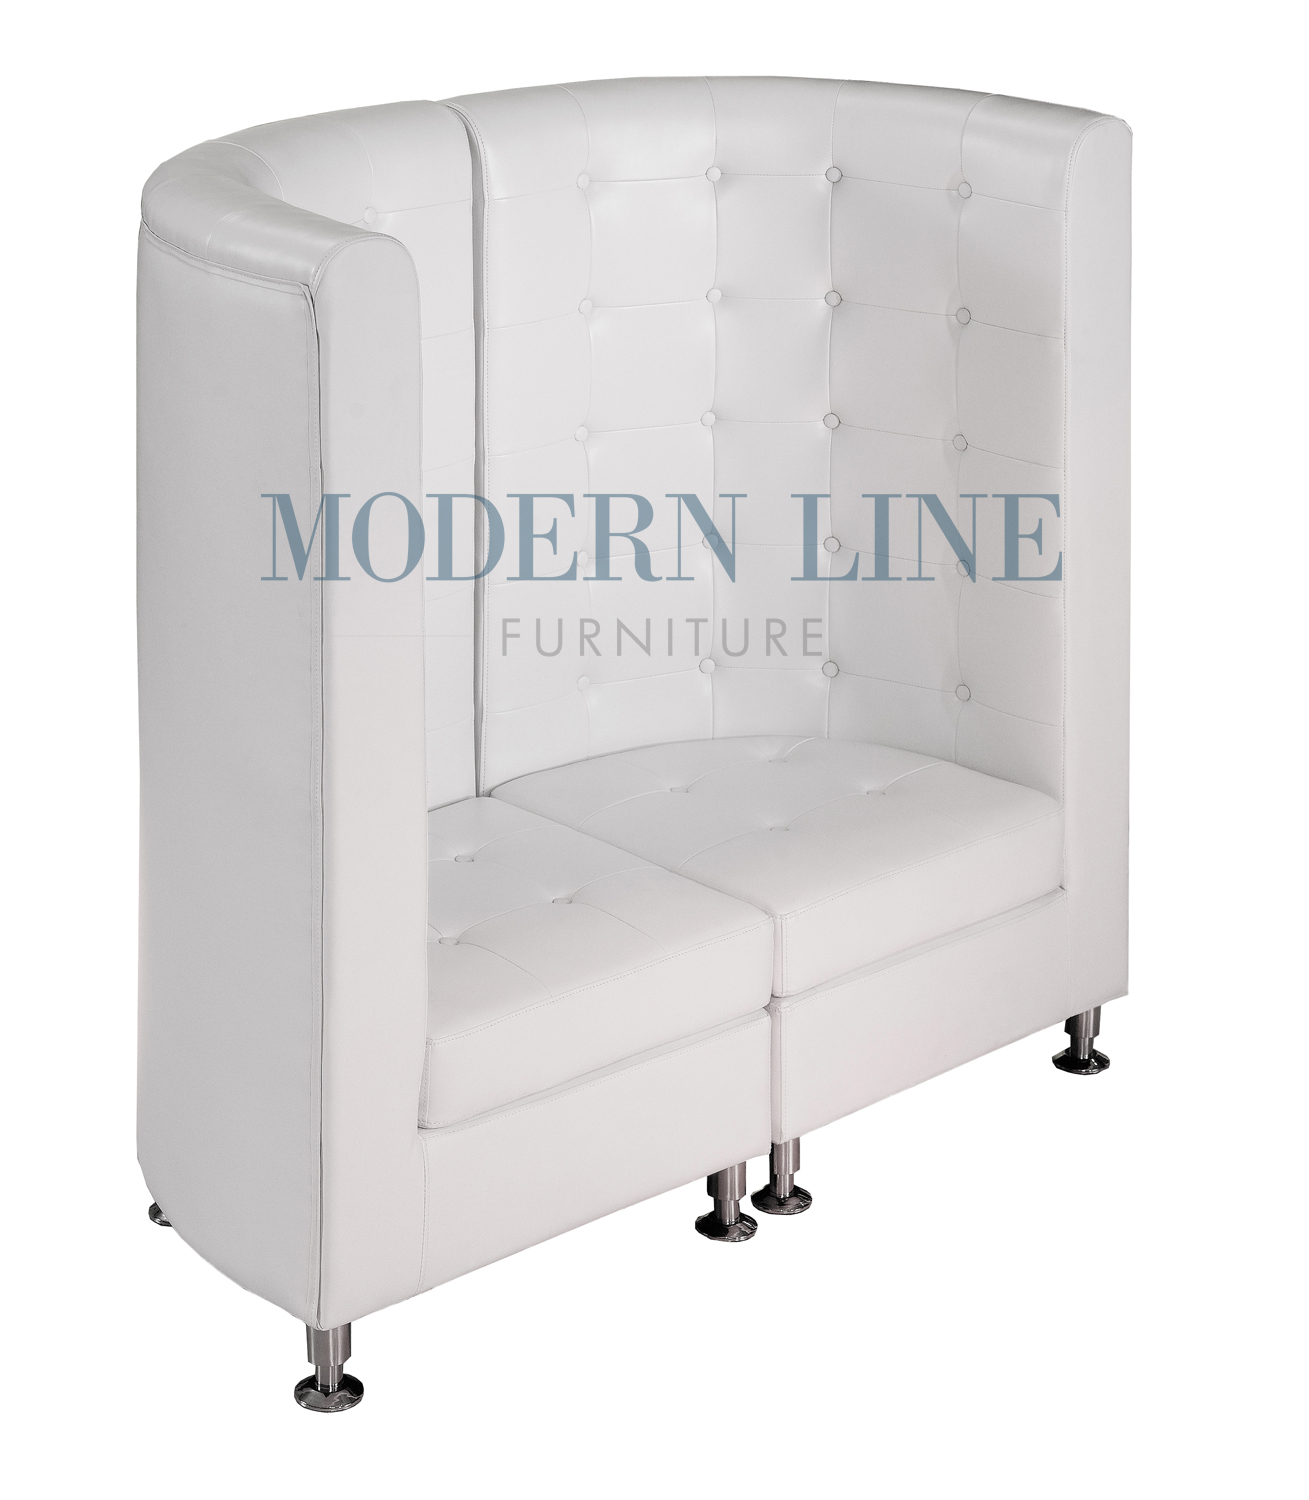 modern line furniture commercial furniture custom made furniture seating collection modern modular furniture white leather curved loveseat - Curved Loveseat